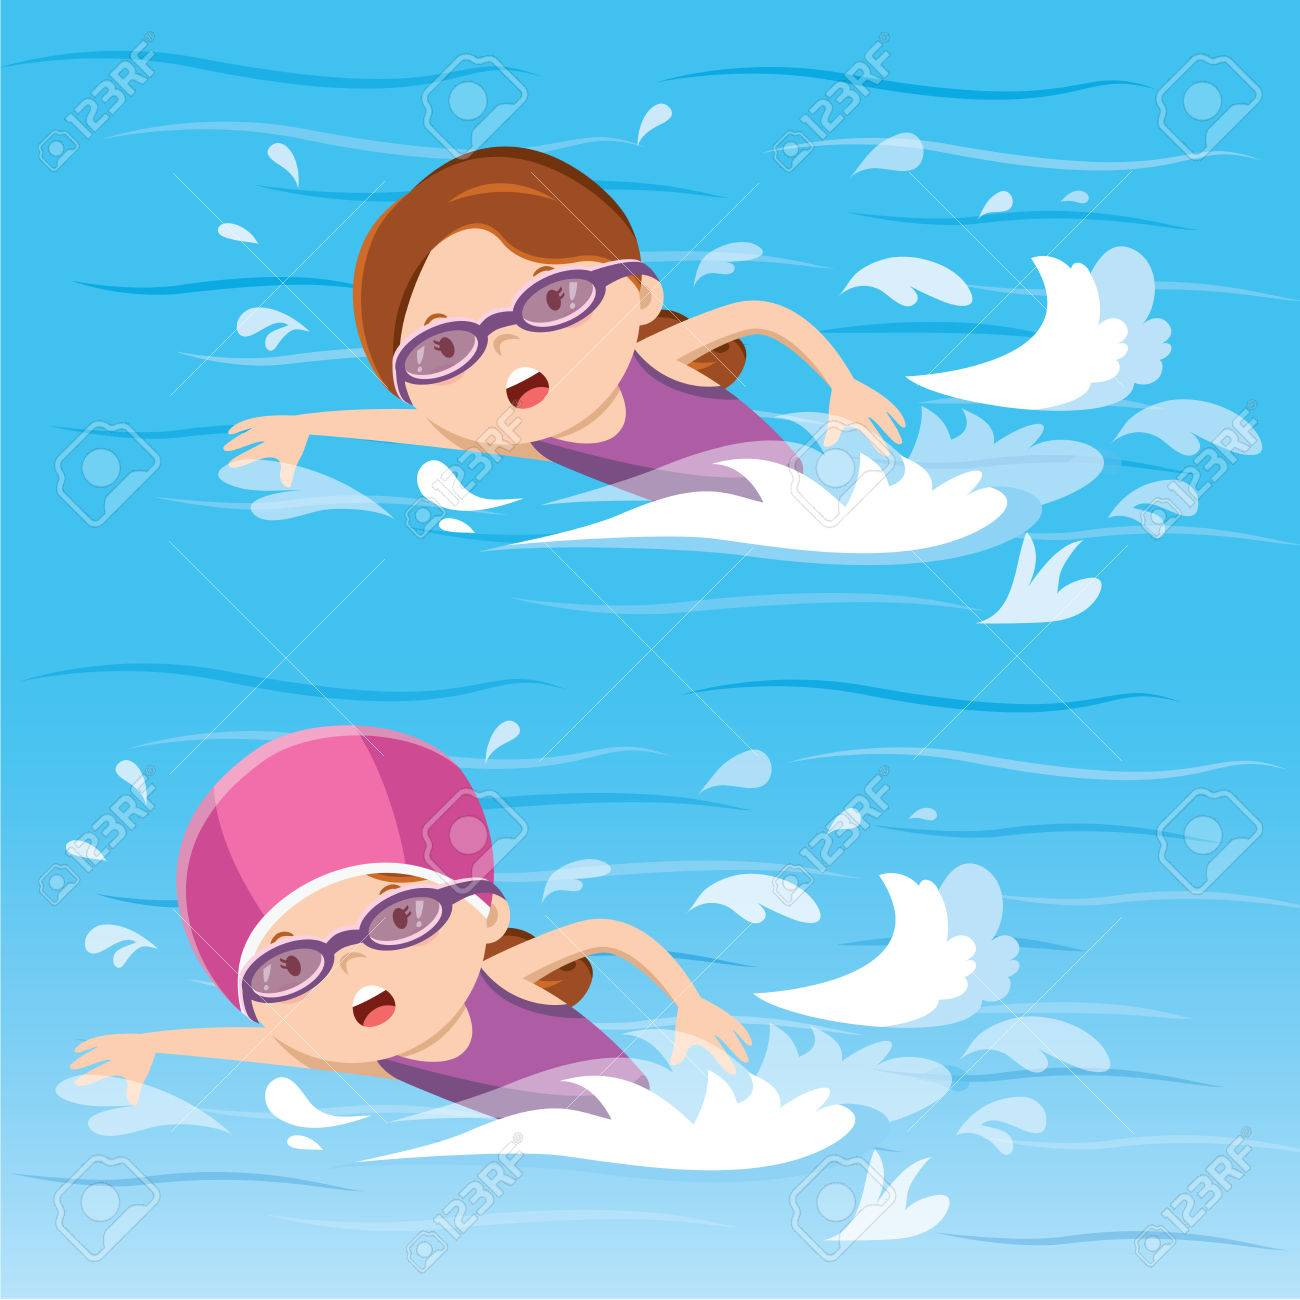 Swimming Clipart Images.